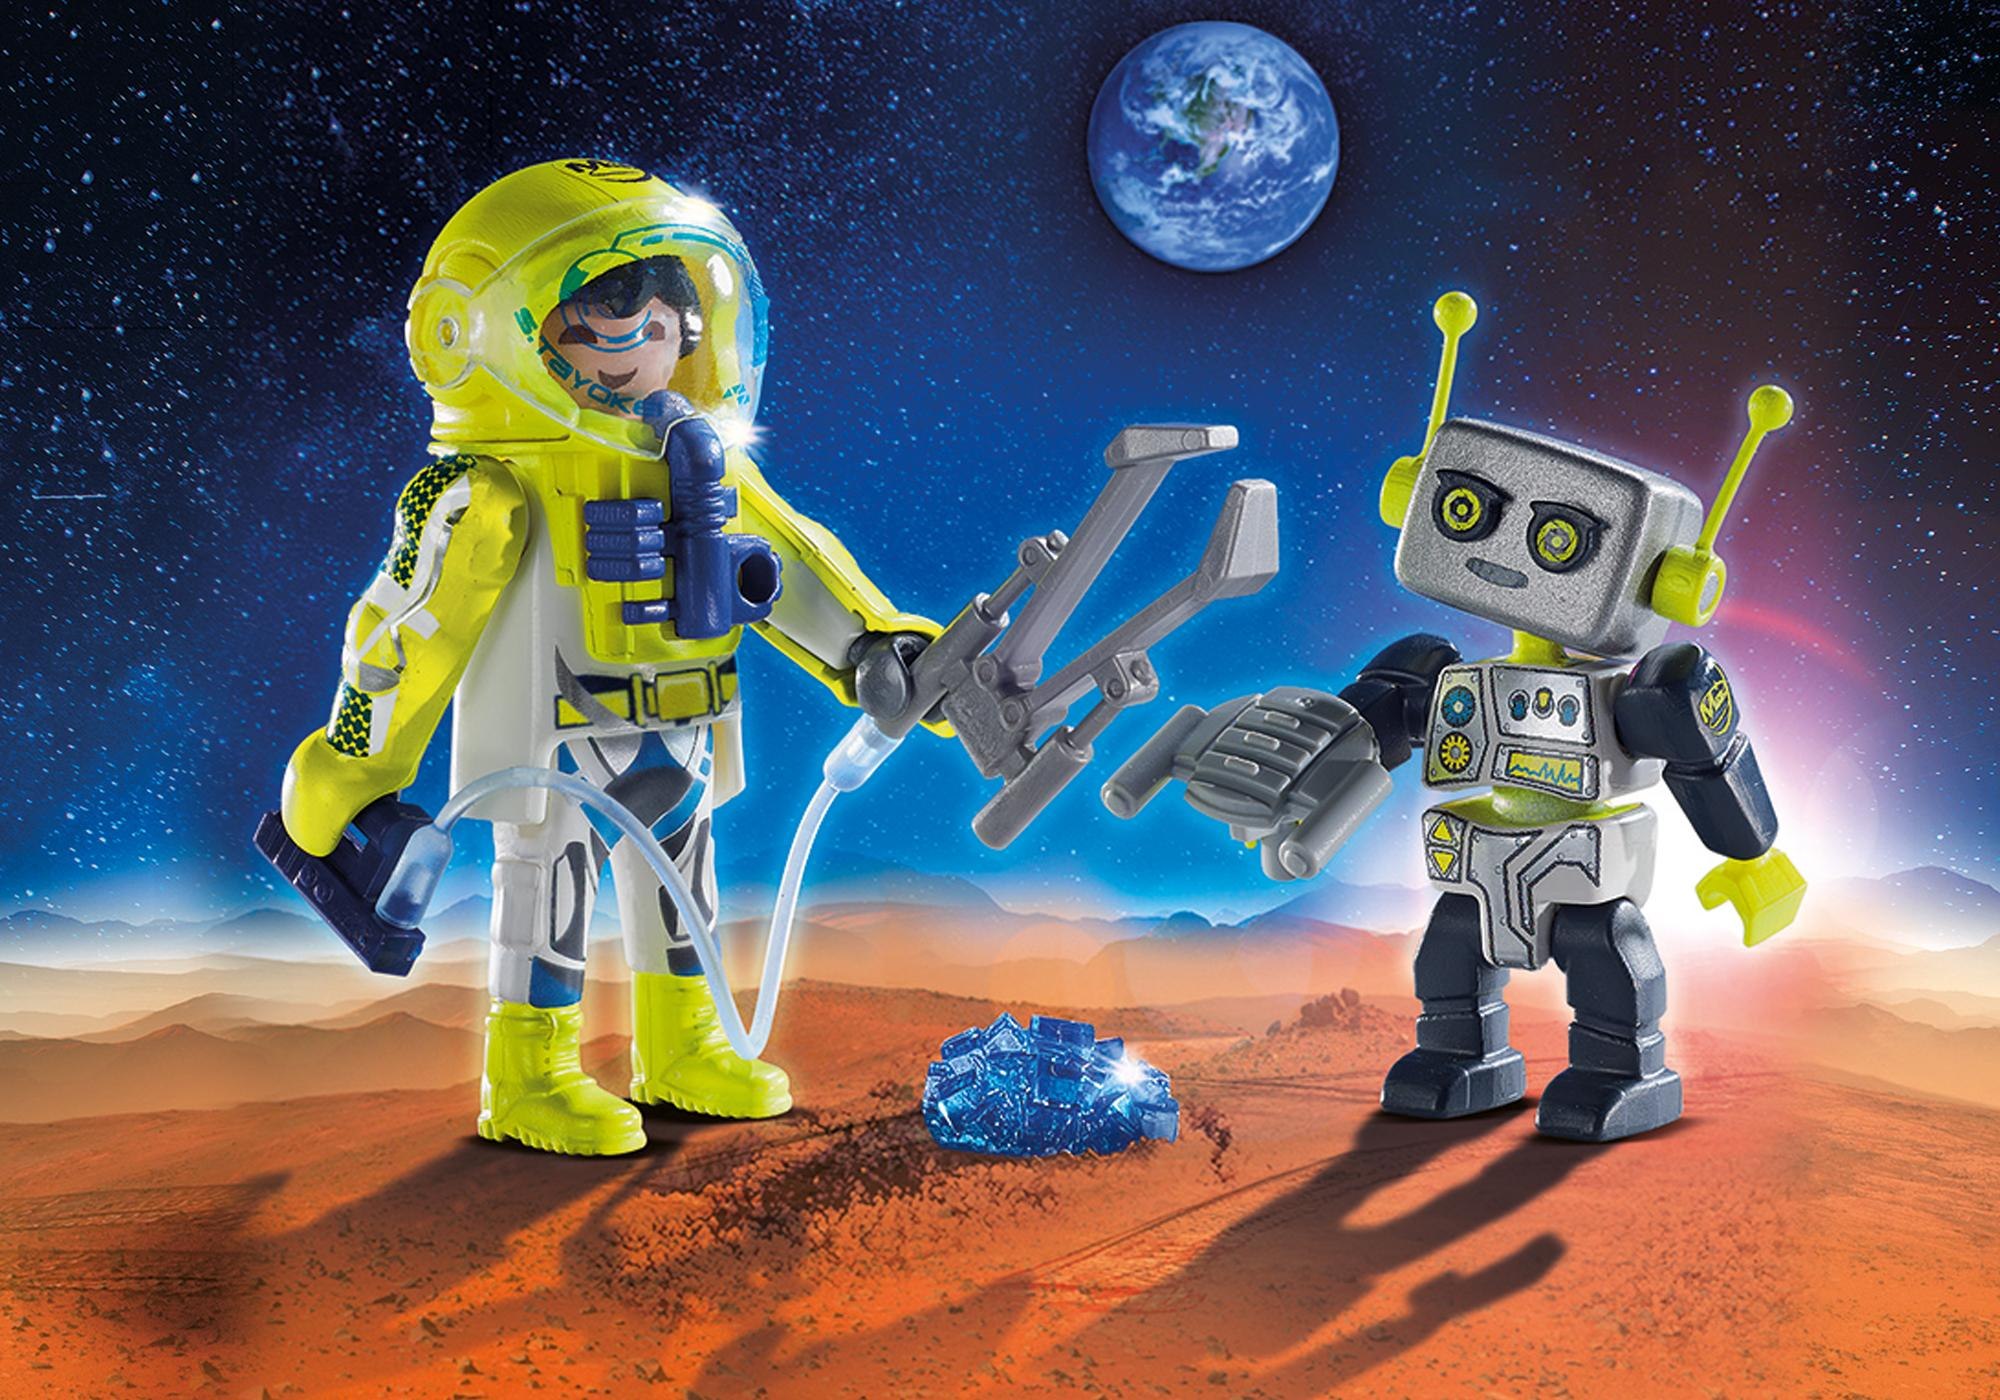 9492_product_detail/Duo Pack Astronauta y Robot